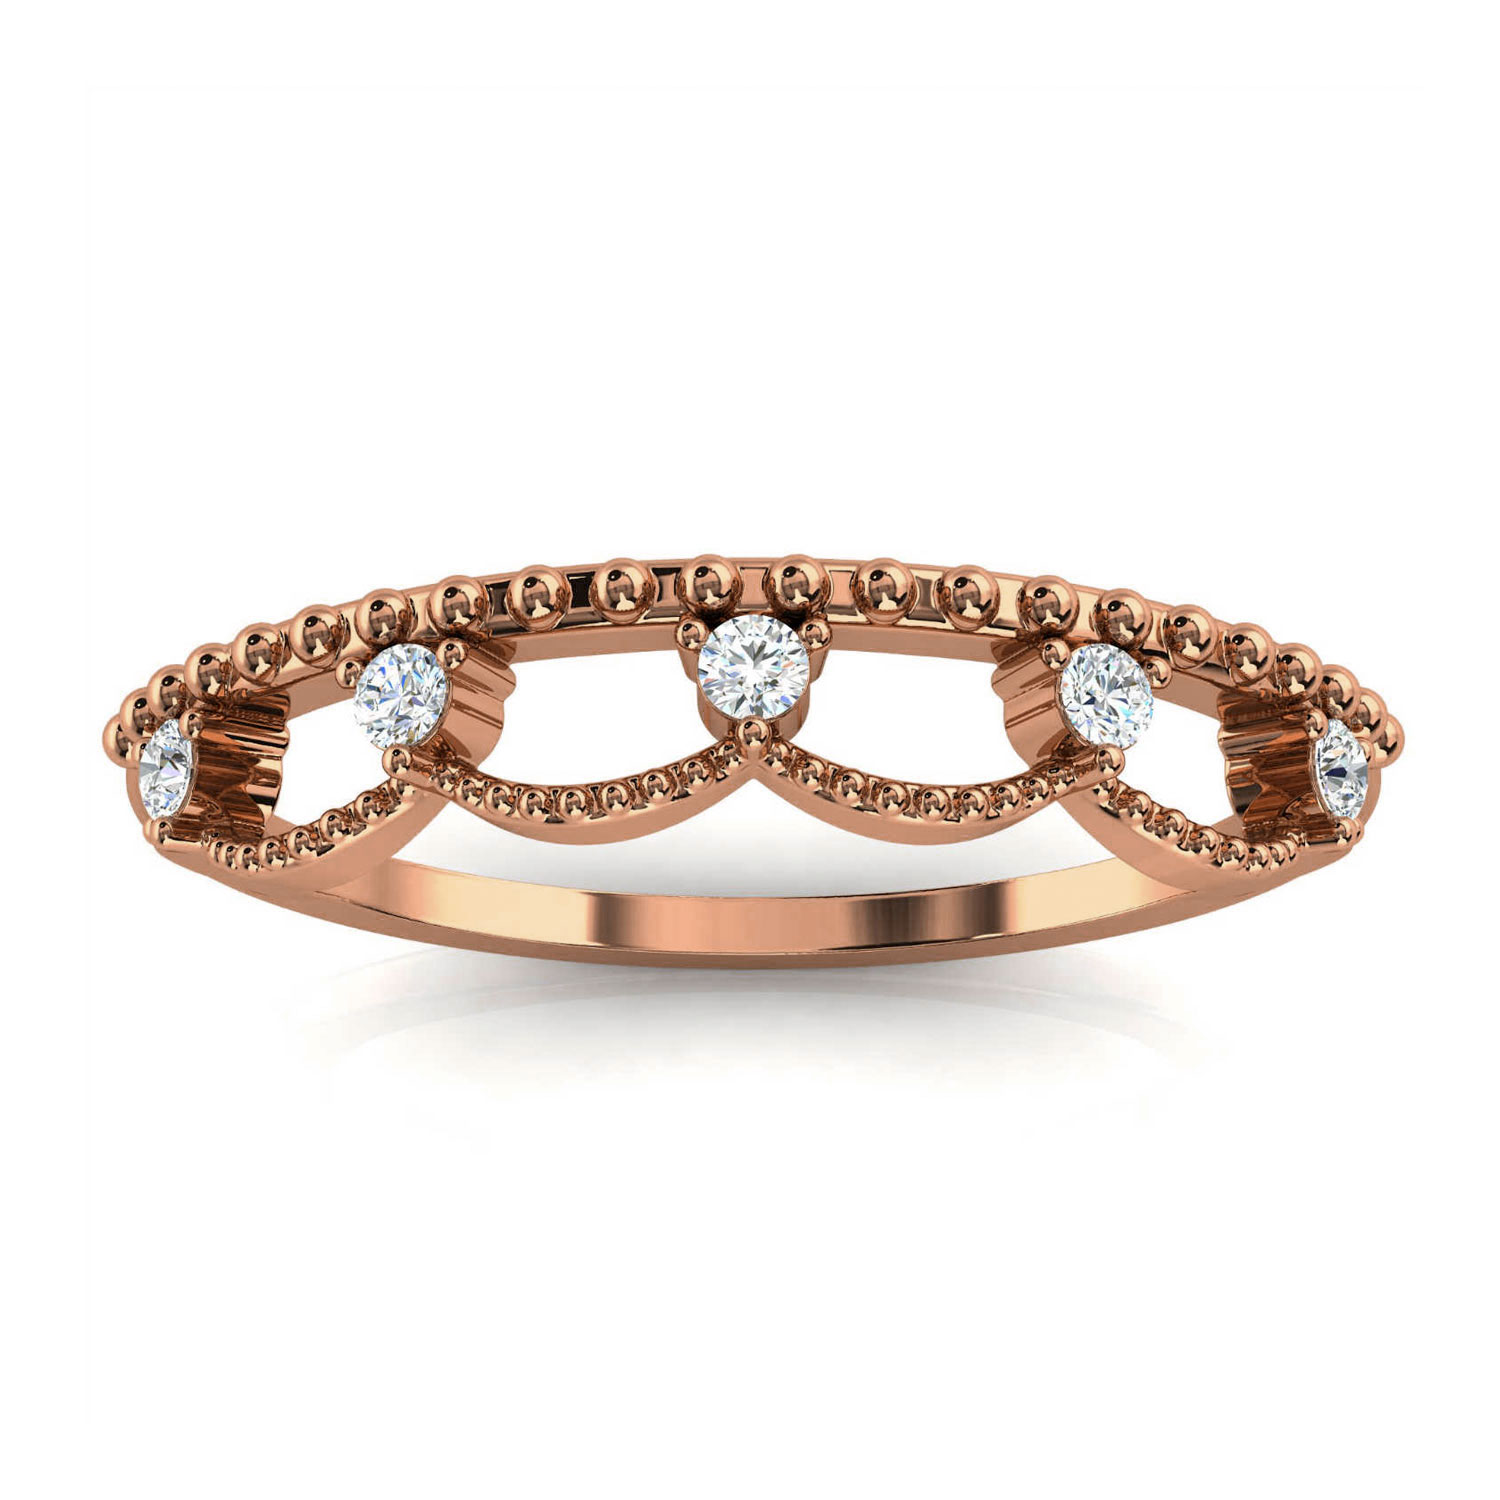 14K Rose Gold Fel Petite Organice Design Diamond Ring ( 1/10 ct. tw)